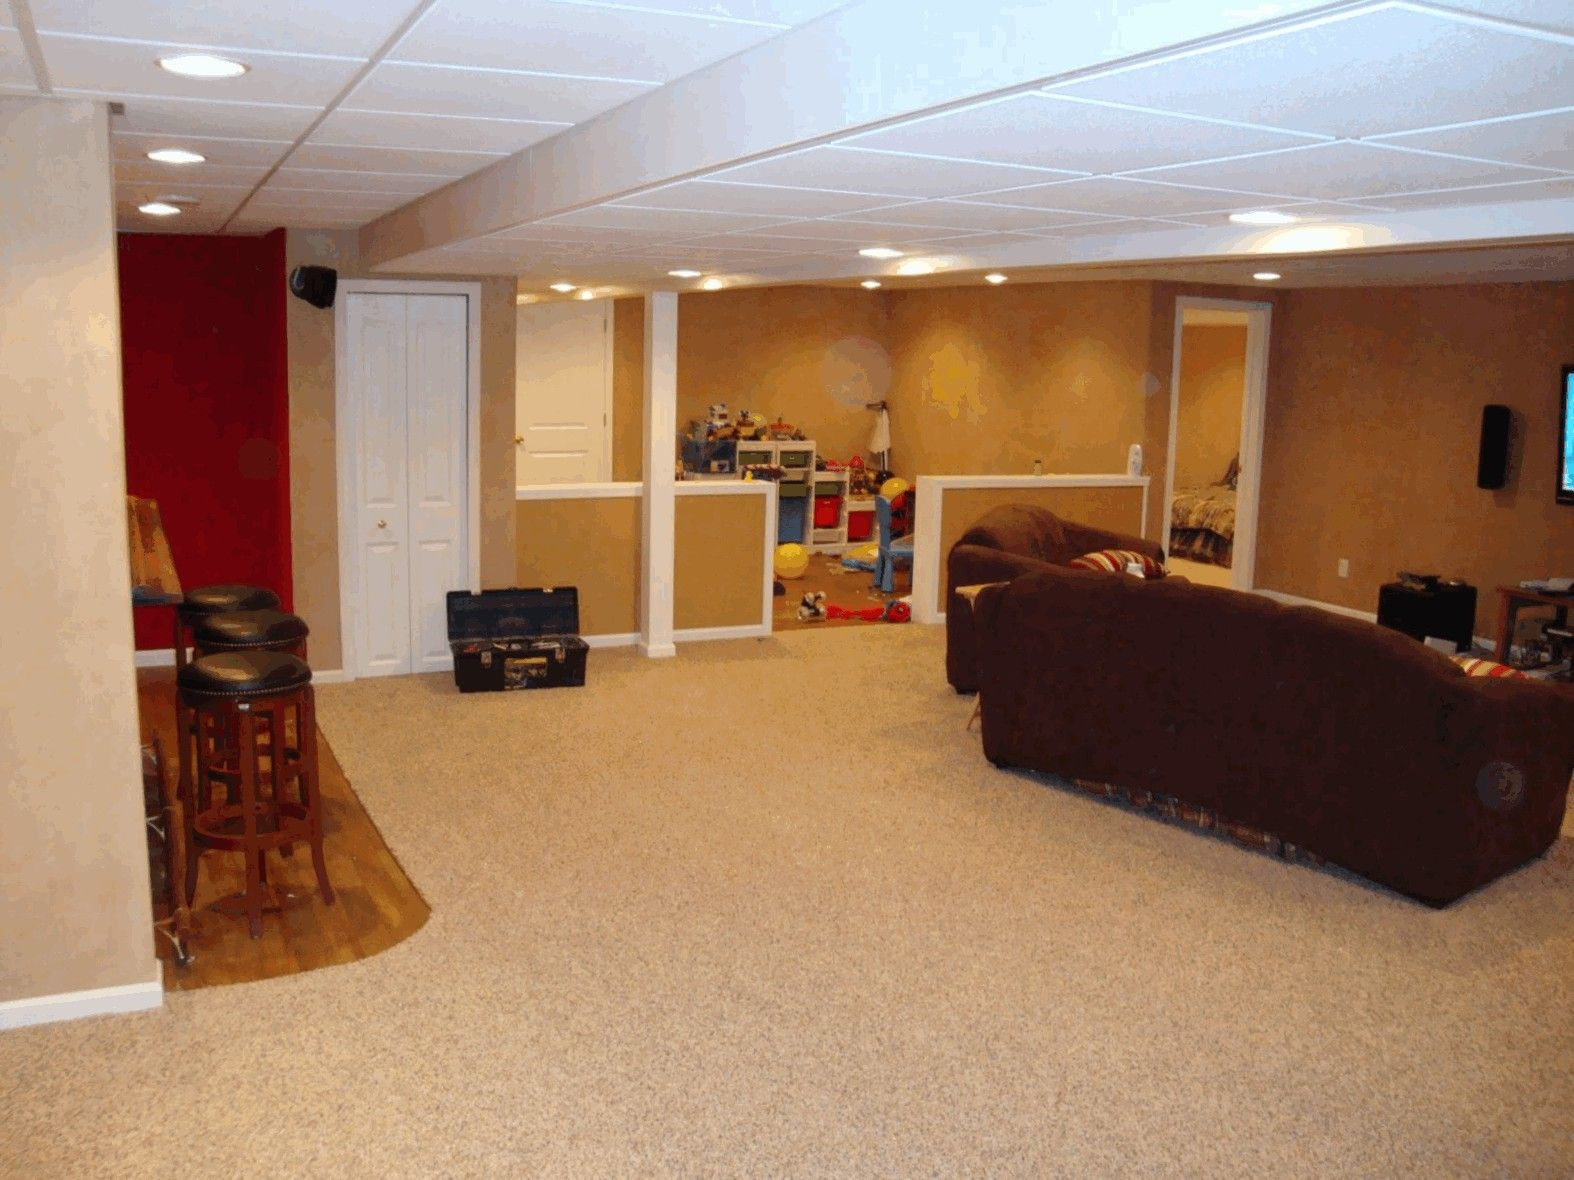 Liking the half walls basement garage remodel ideas pinterest - Remodel basement ideas ...